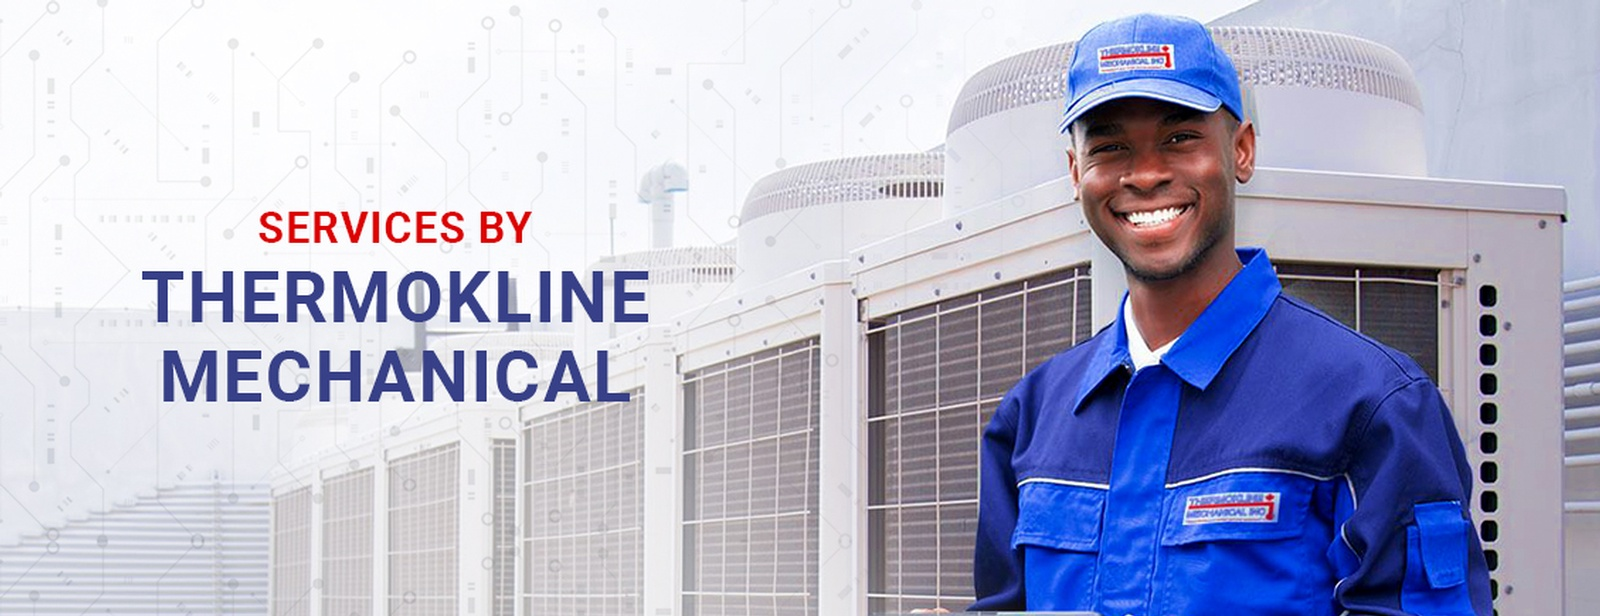 Services by Thermokline Mechanical - HVAC Contractors GTA